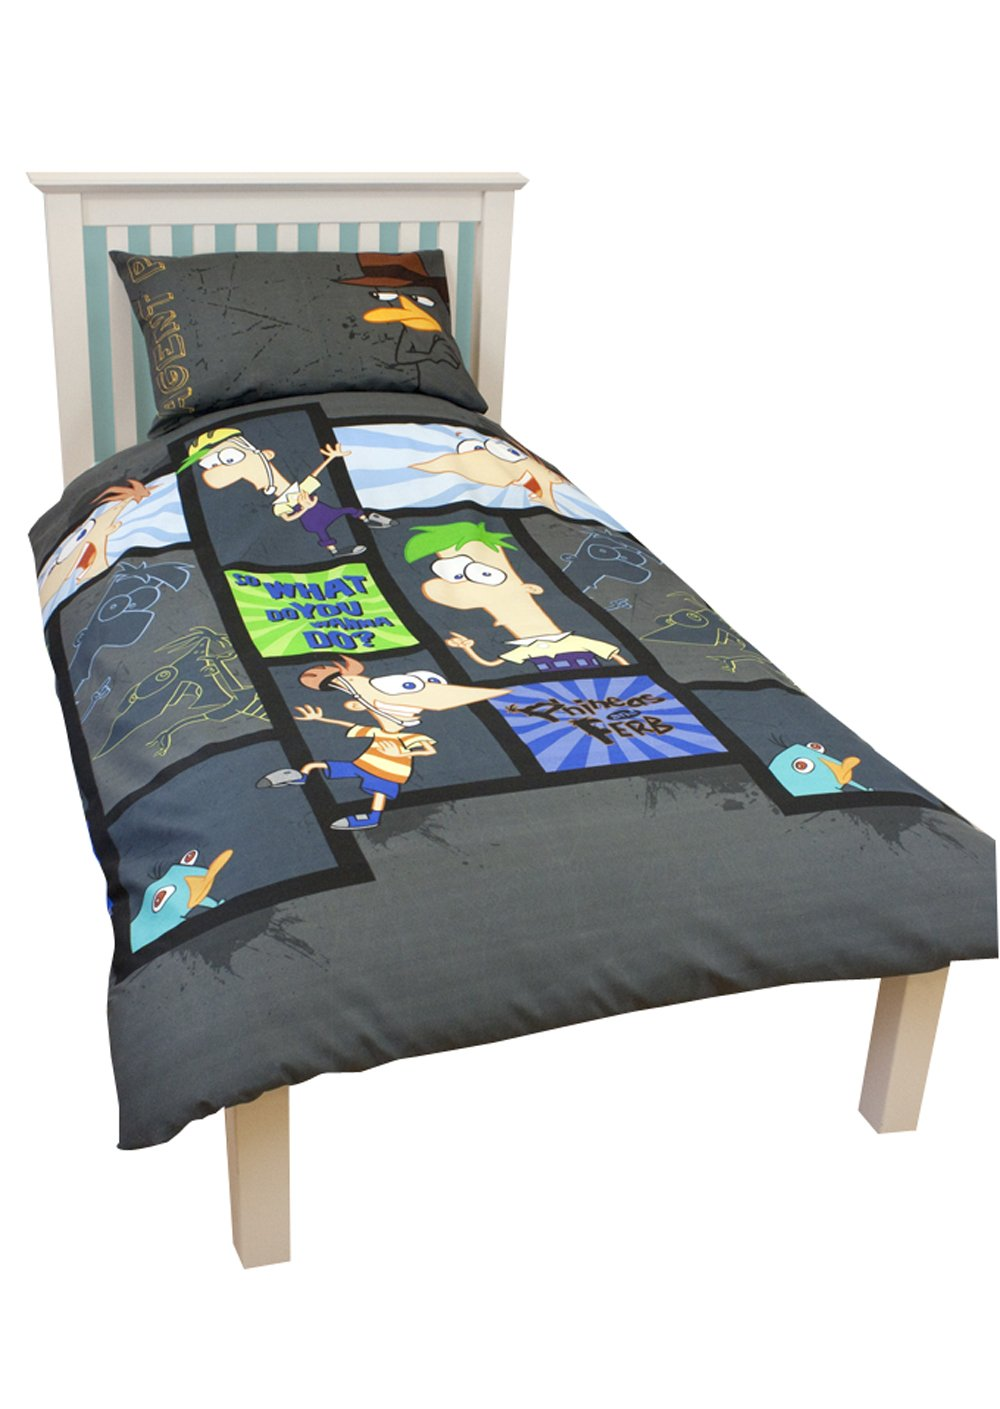 Disney Character World Phineas and Ferb Agent Single Rotary Duvet Set DPF-AGT-MS2-MSC-06 864-CharacterWorld-8523